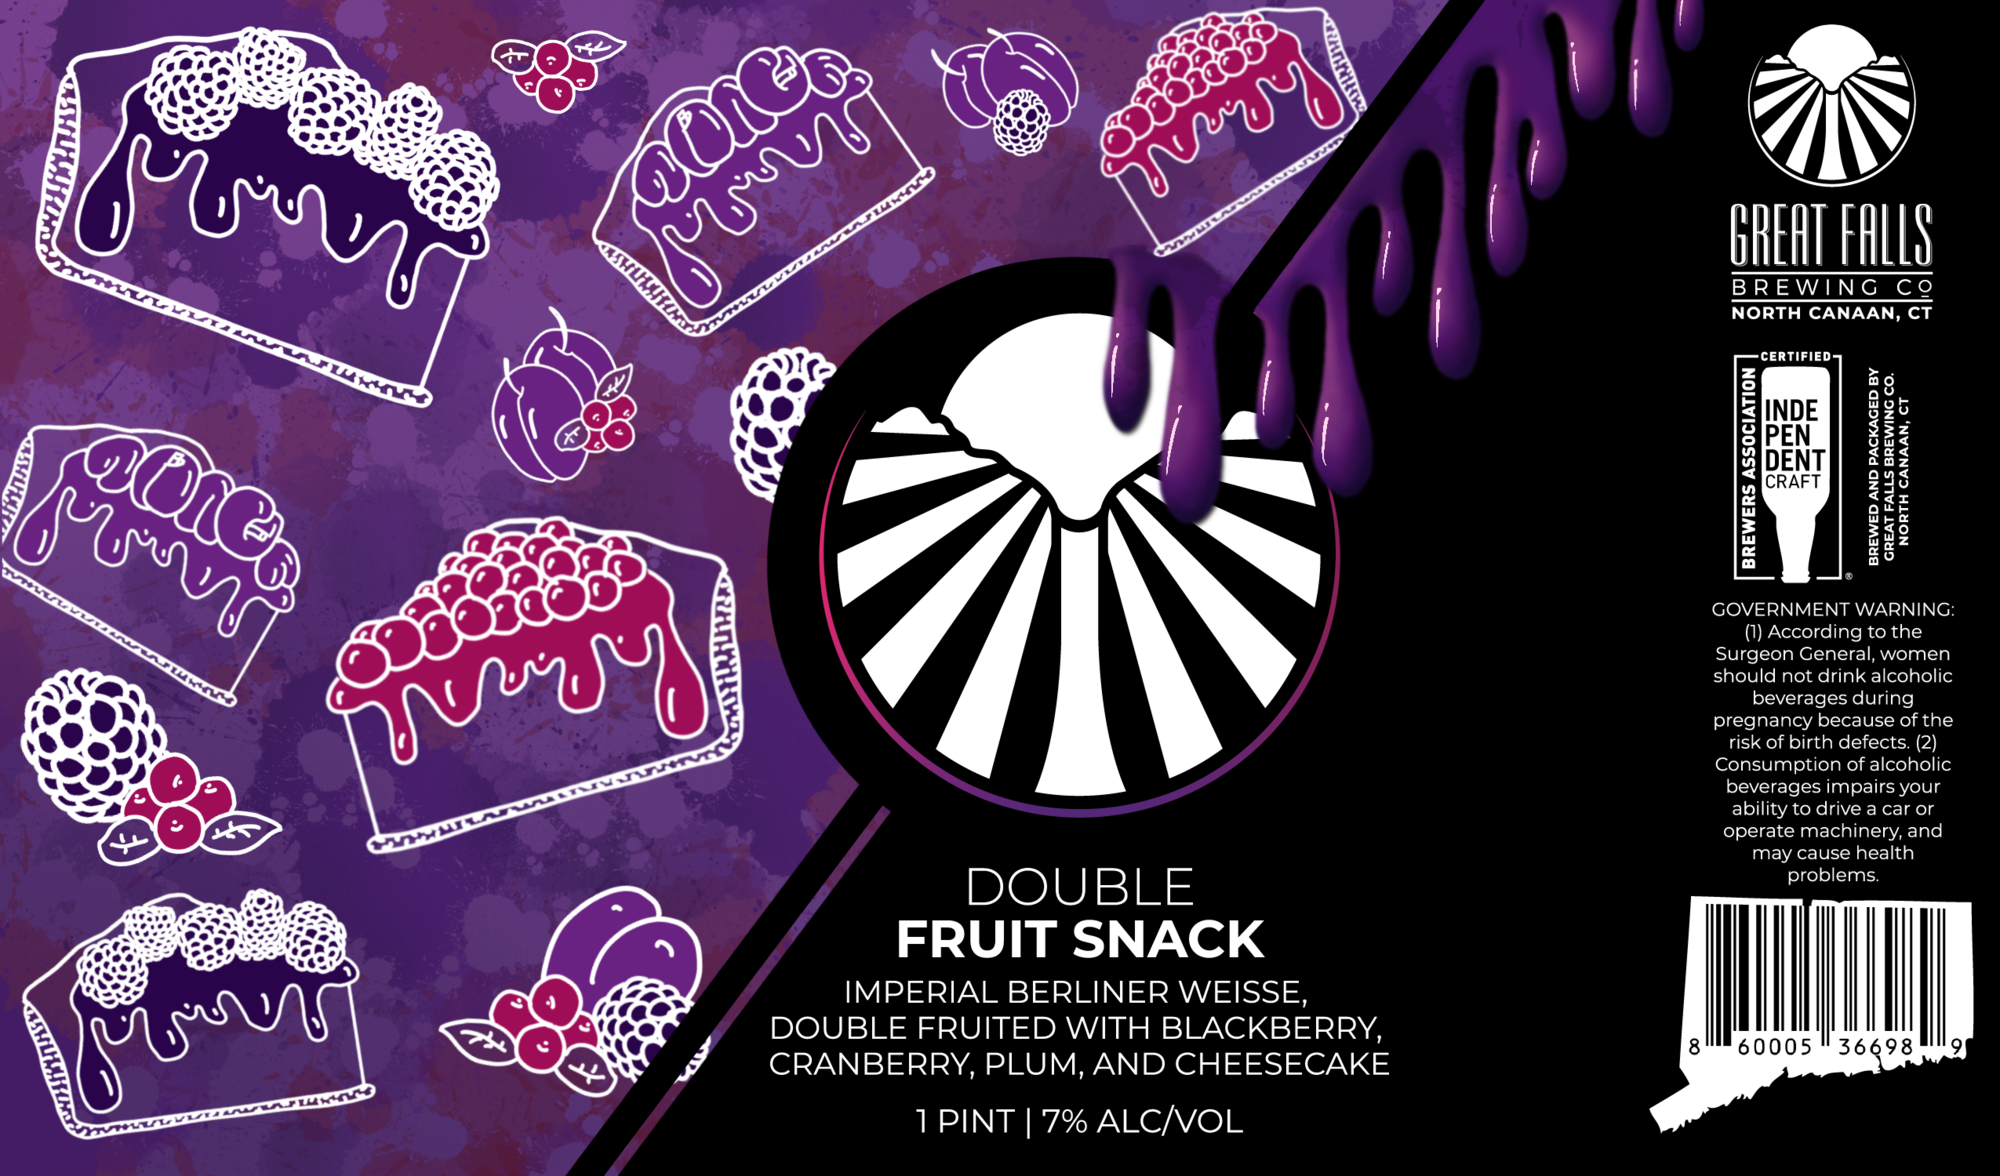 Great Falls Double Fruit Snack- Blackberry, Cranberry, Plum Cheesecake beer Label Full Size